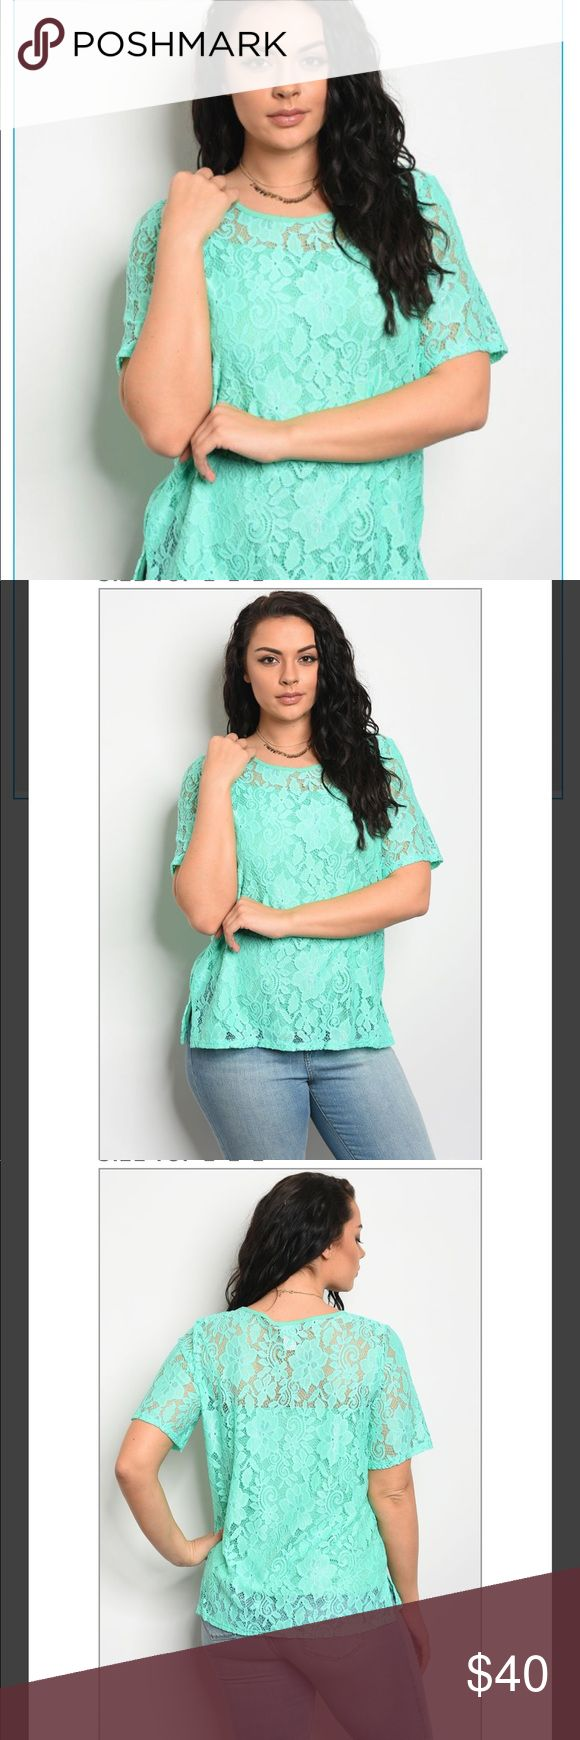 Mint Green shirt Mint Green lace shirt! Available in Plus Sizes! Tops Blouses